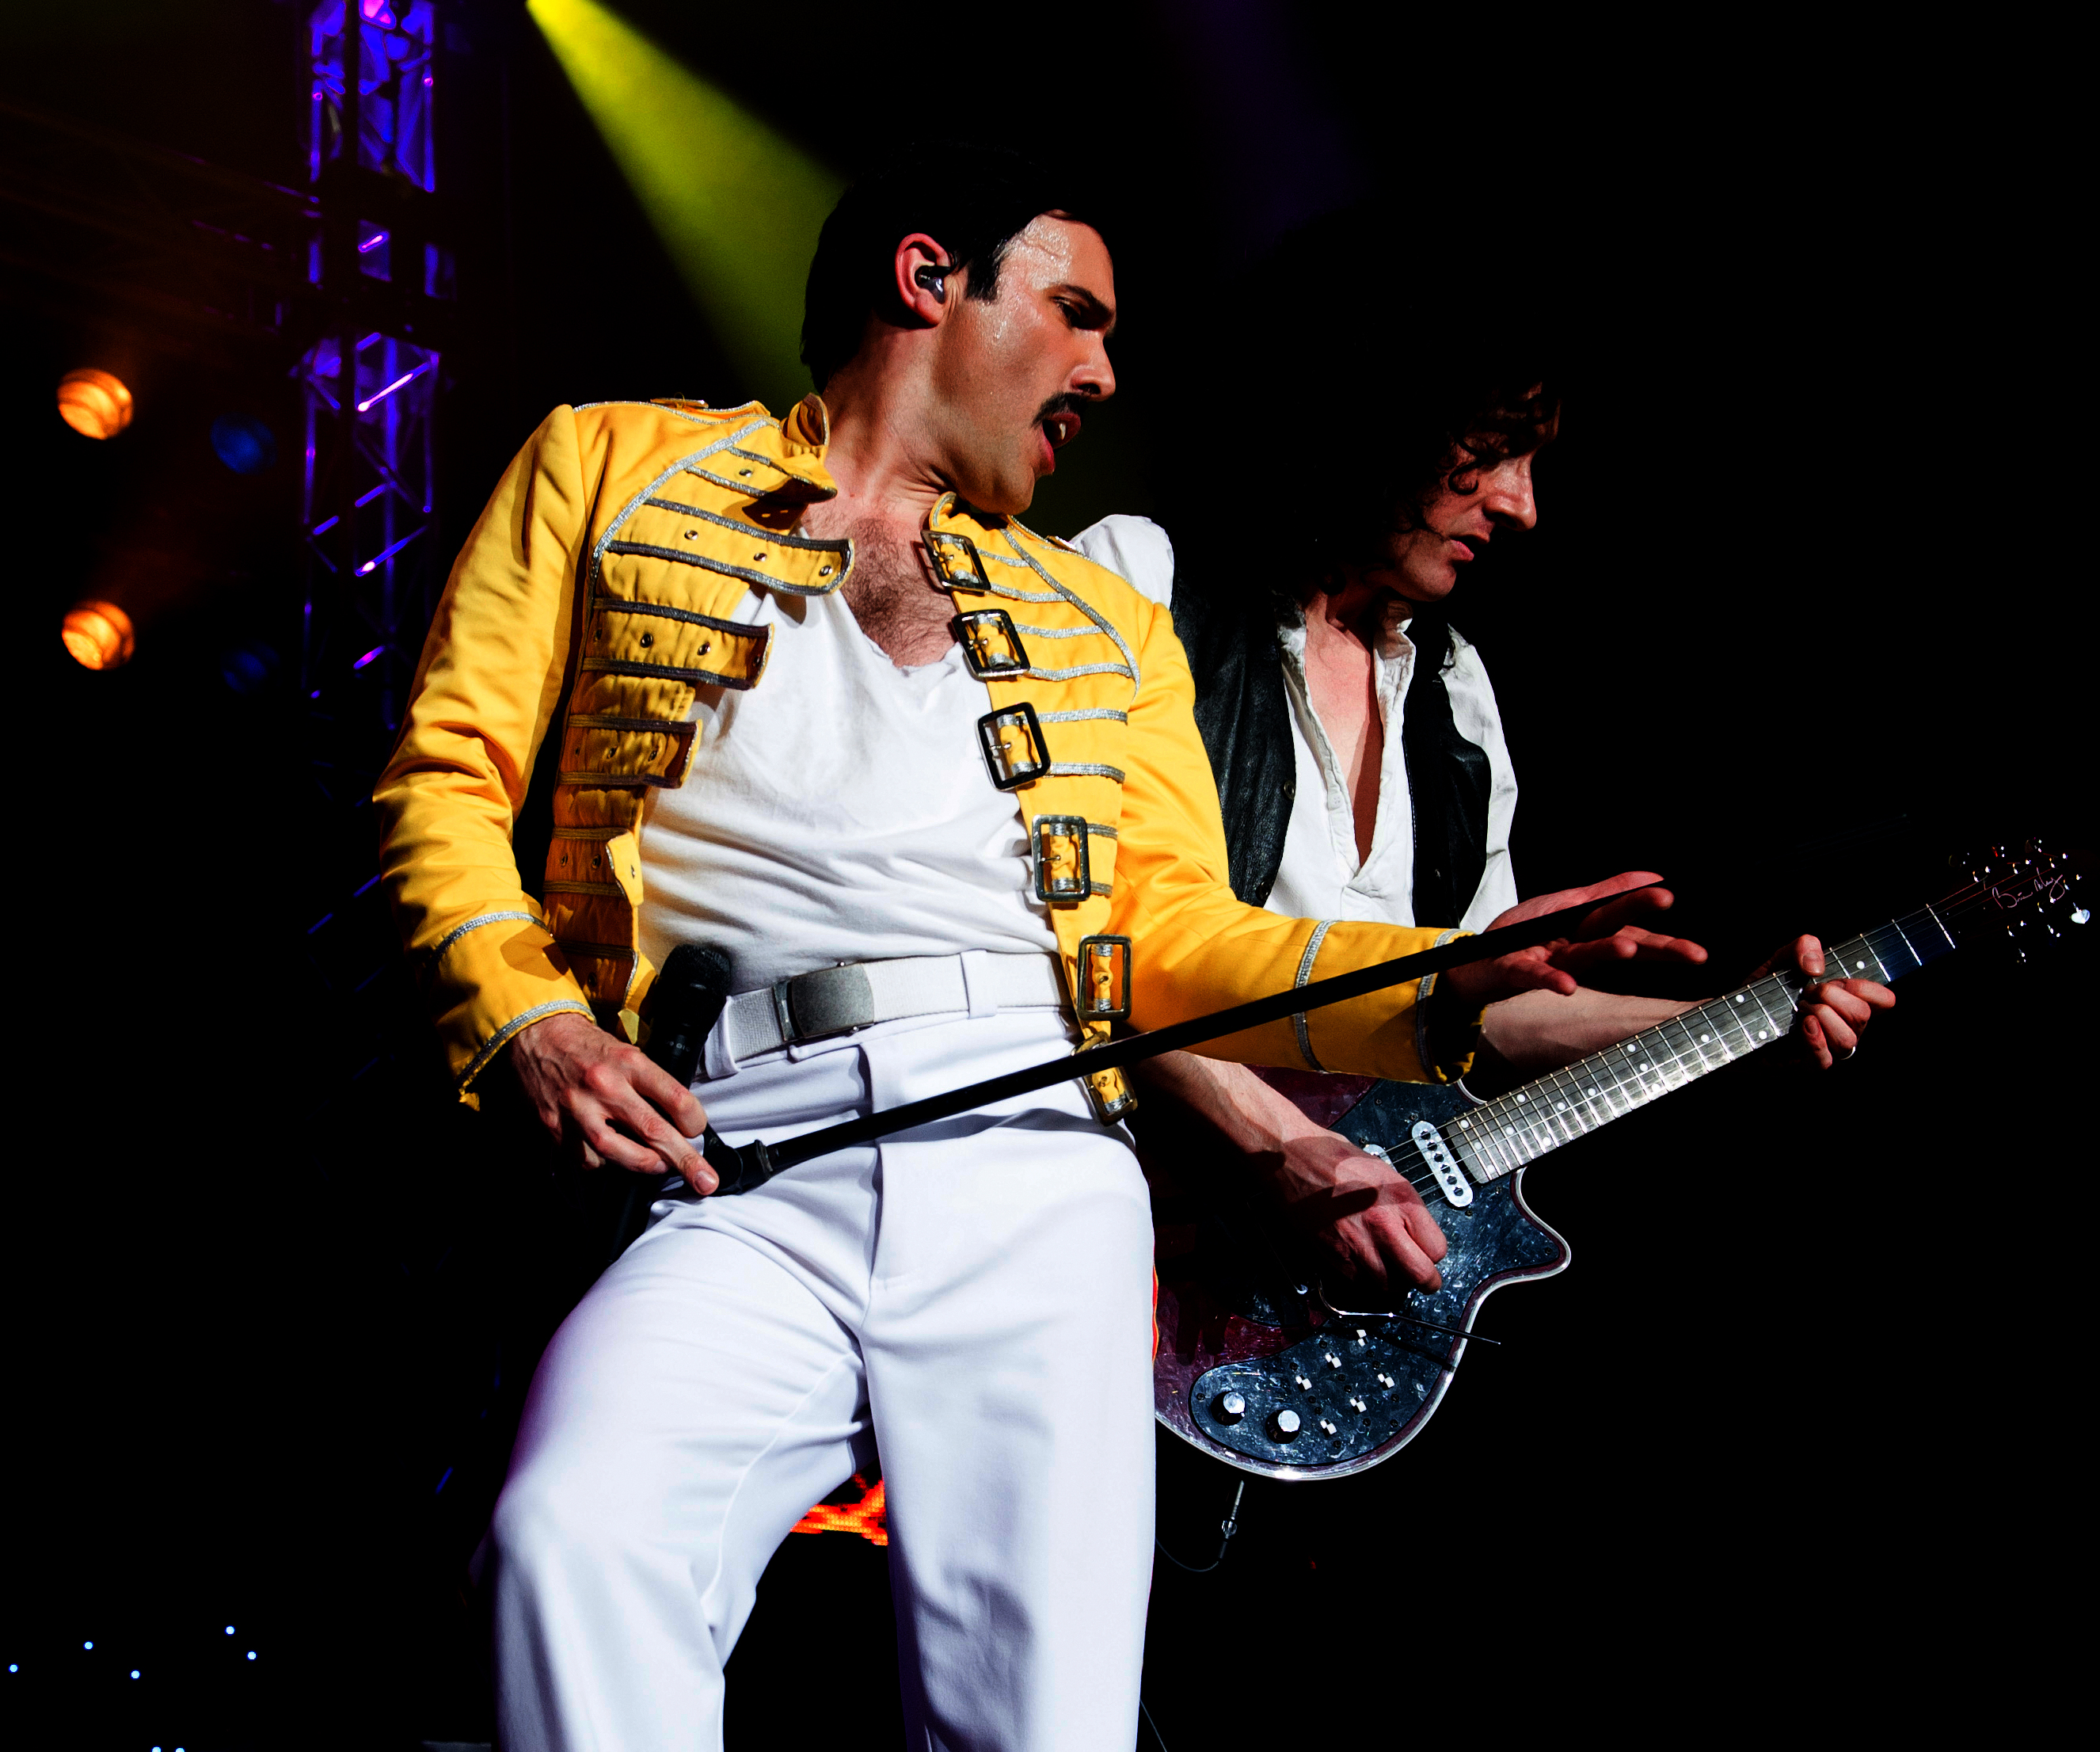 KILLER QUEEN – REVIEW MGM NORTHFIELD PARK